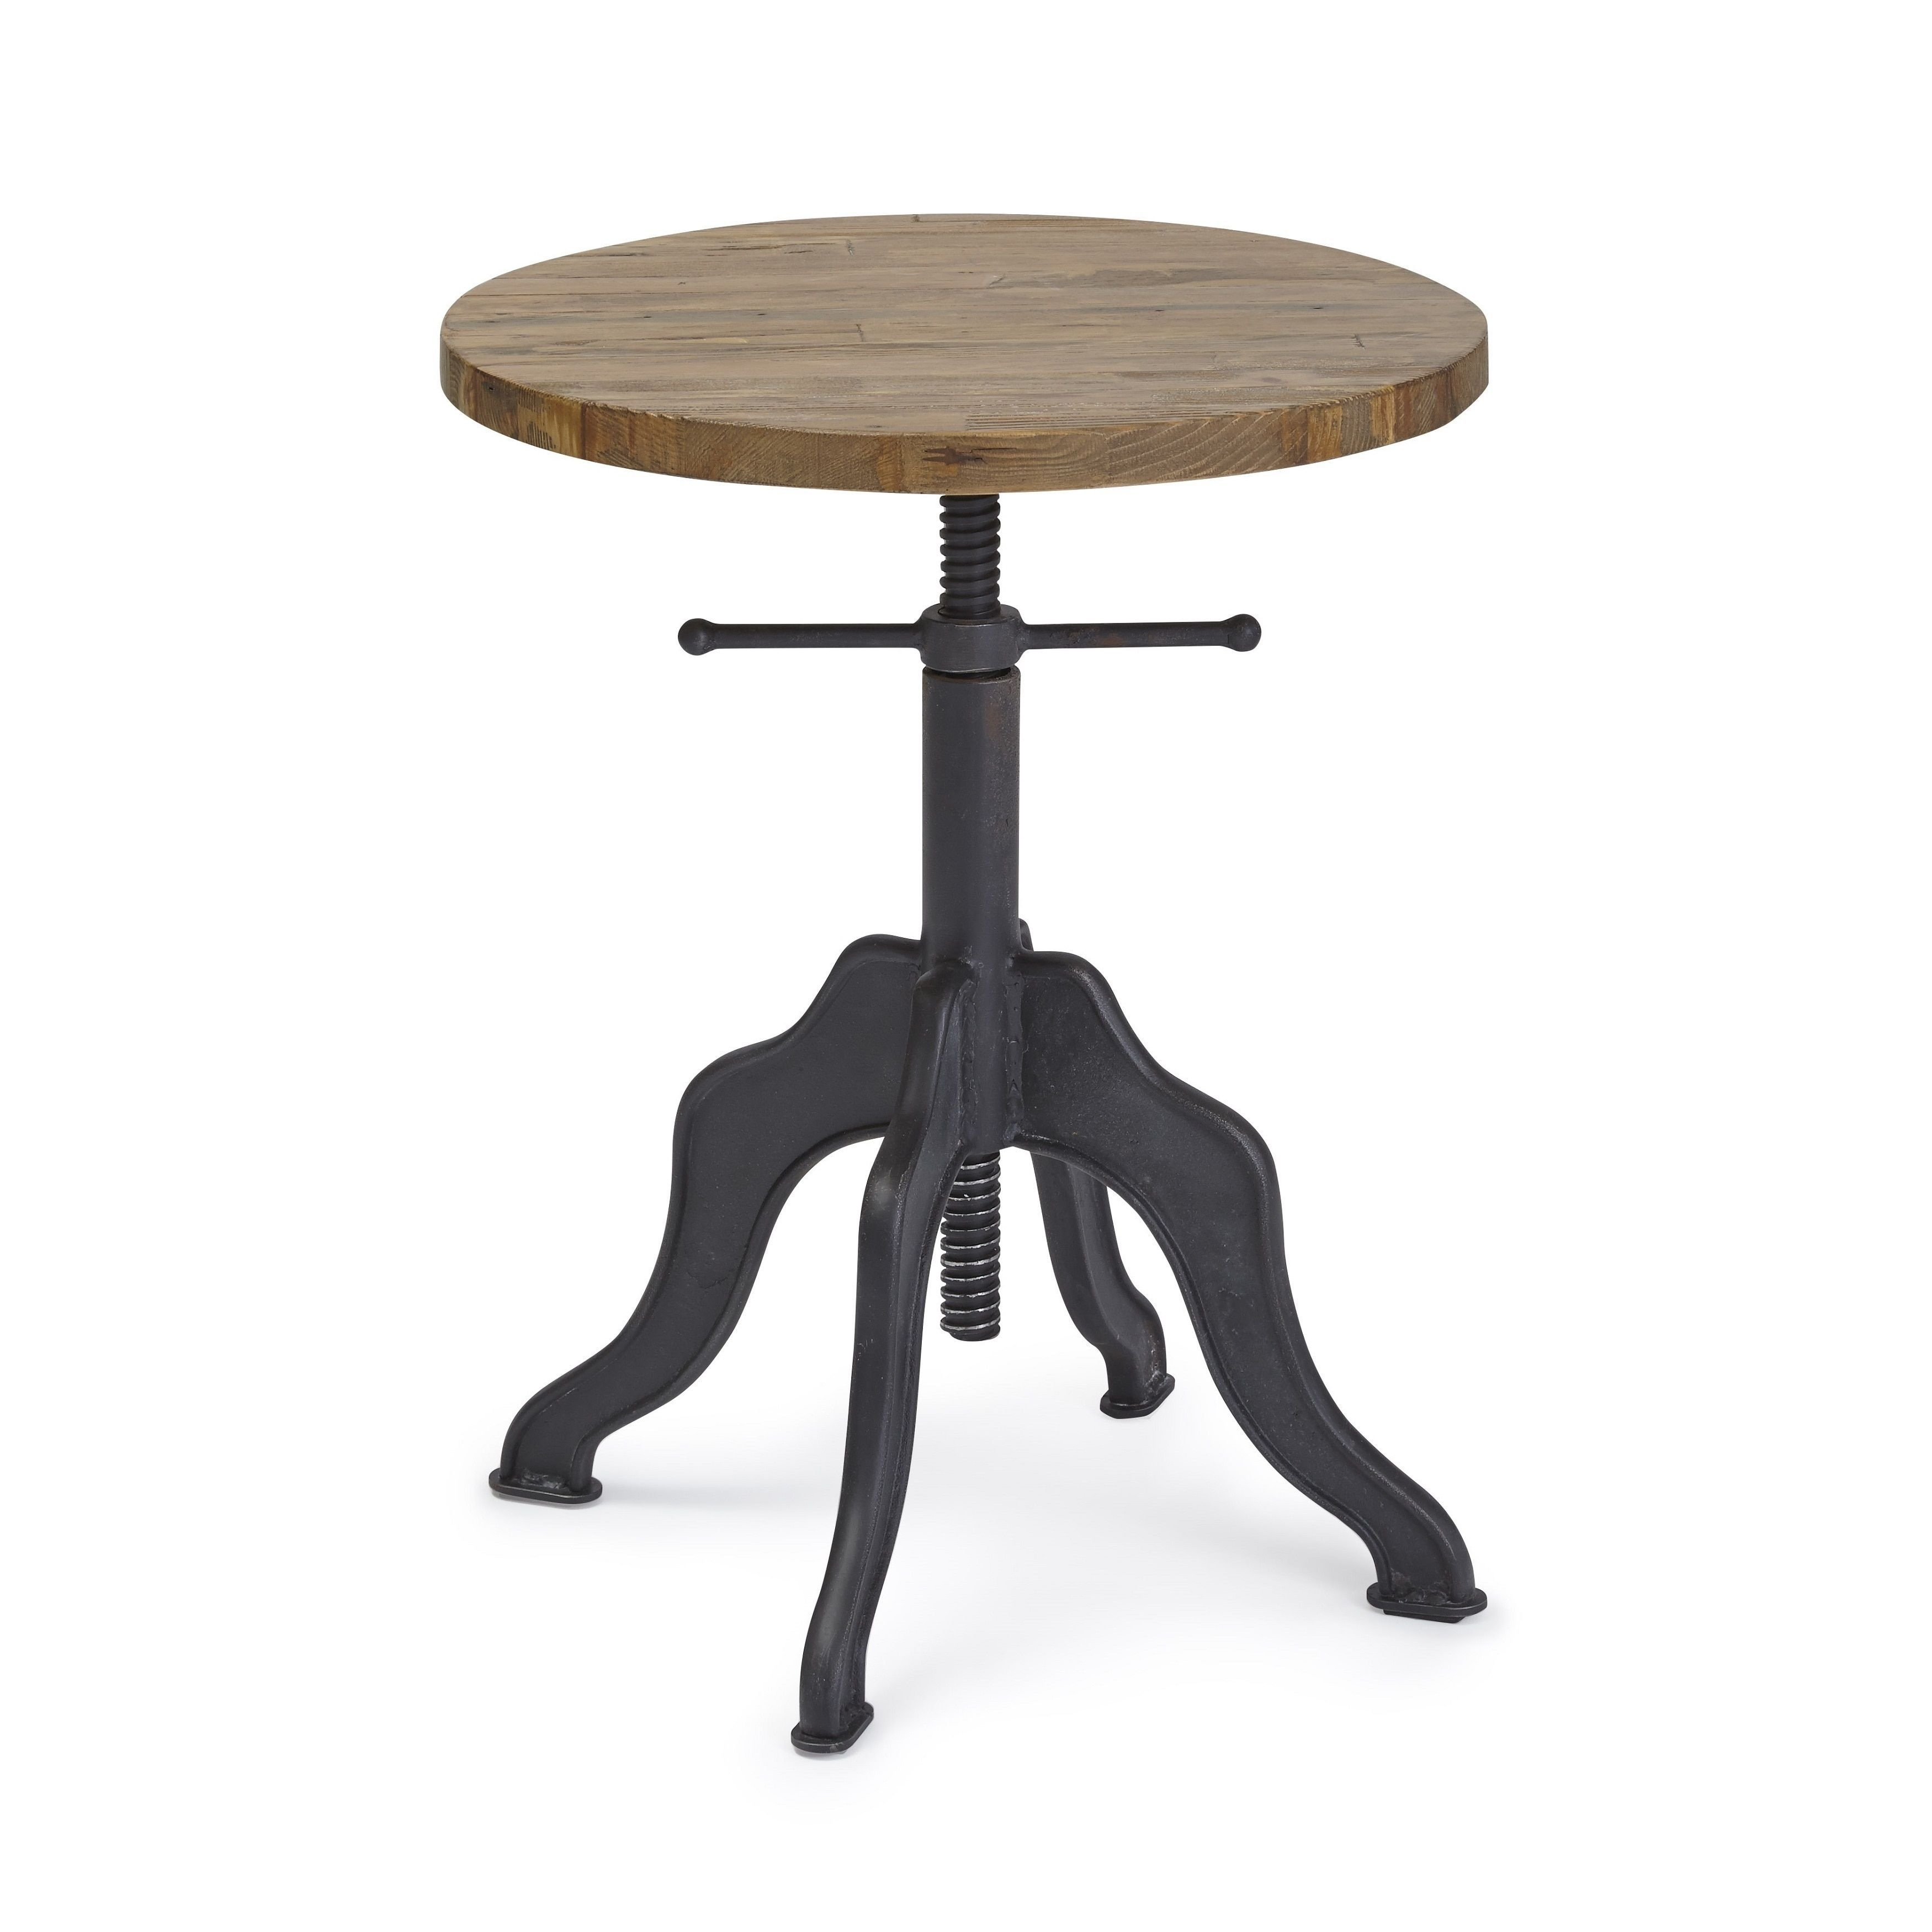 excellent wood accent table round tripod mango white below oval bold tables lani noam rustic solid metal tribal square carved target pressed small burkhardt and unfinis inspire